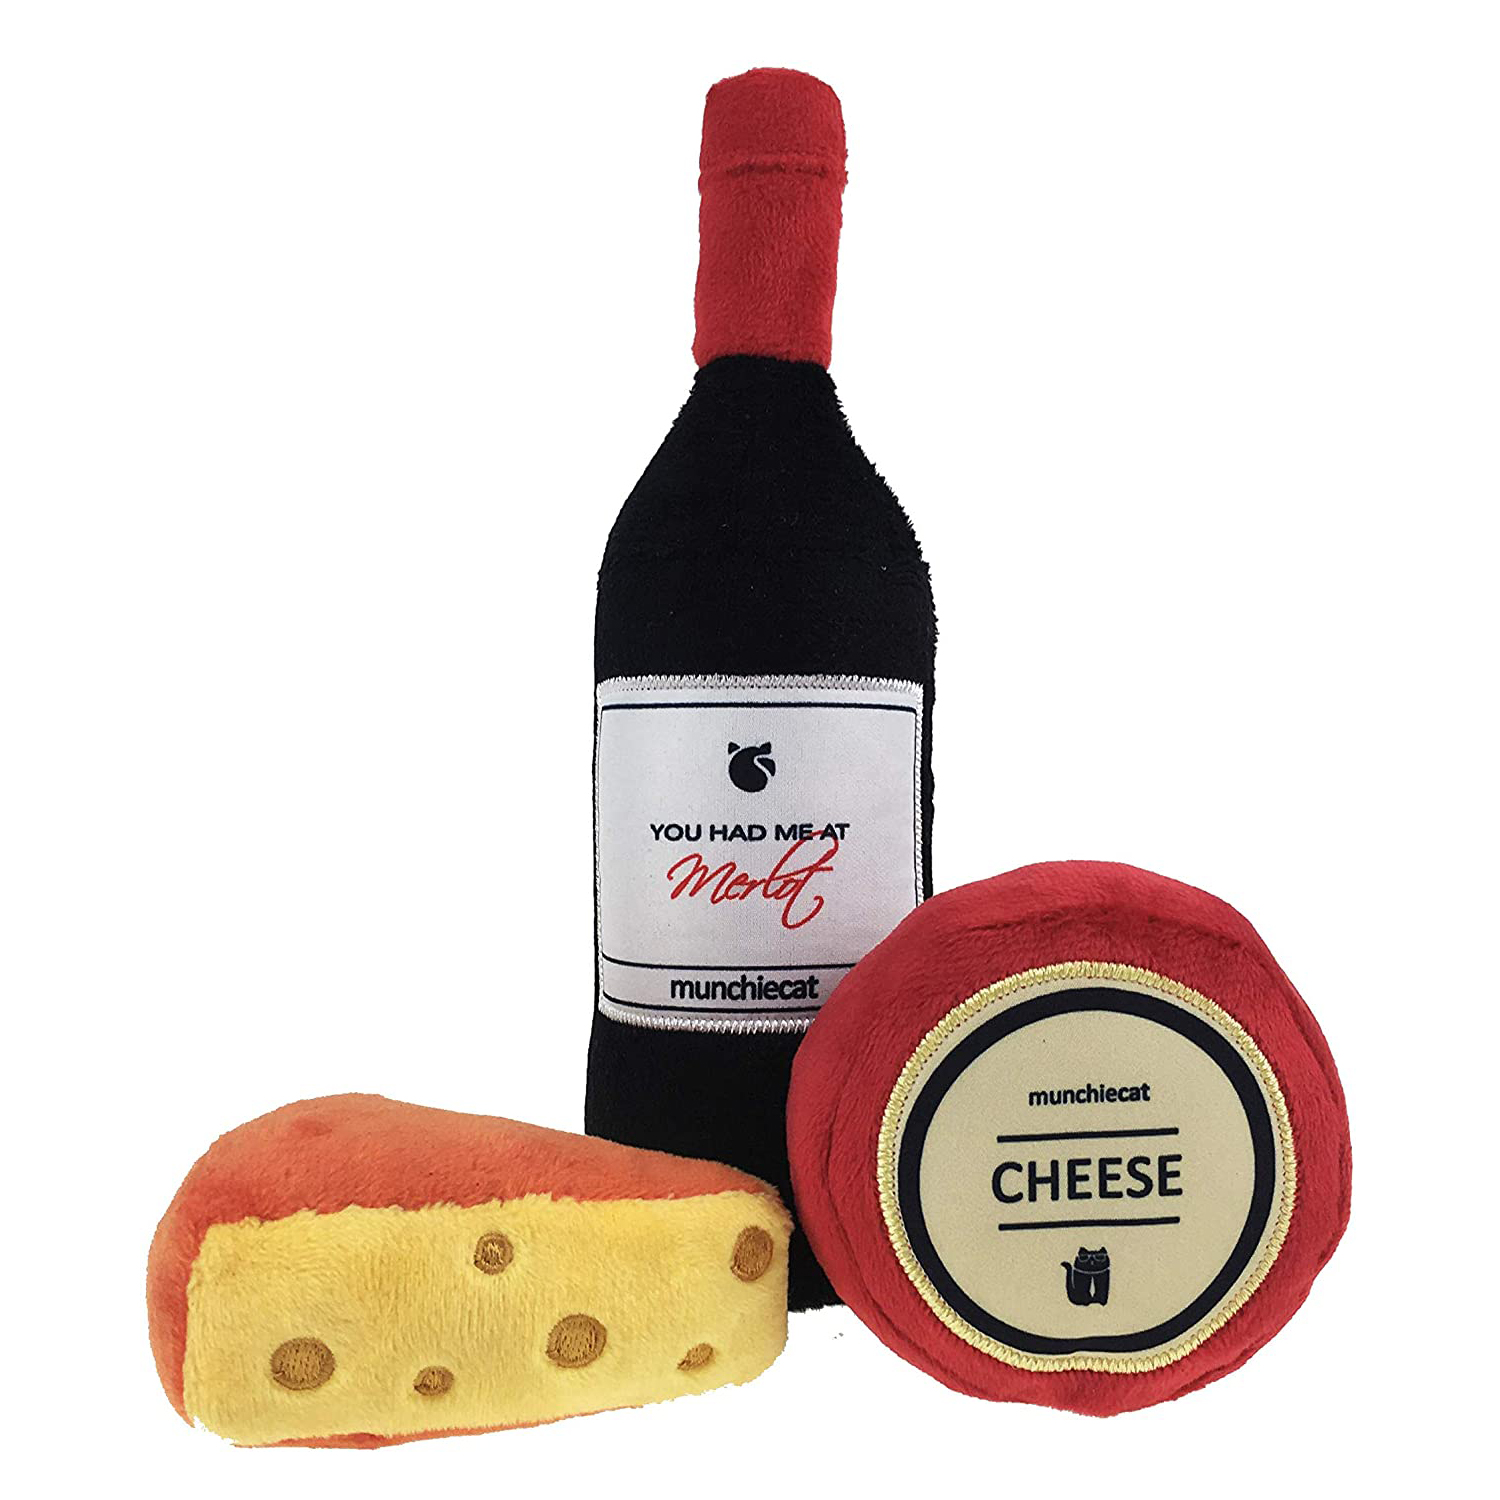 munchiecat-wine-and-cheese-toys-for-cats